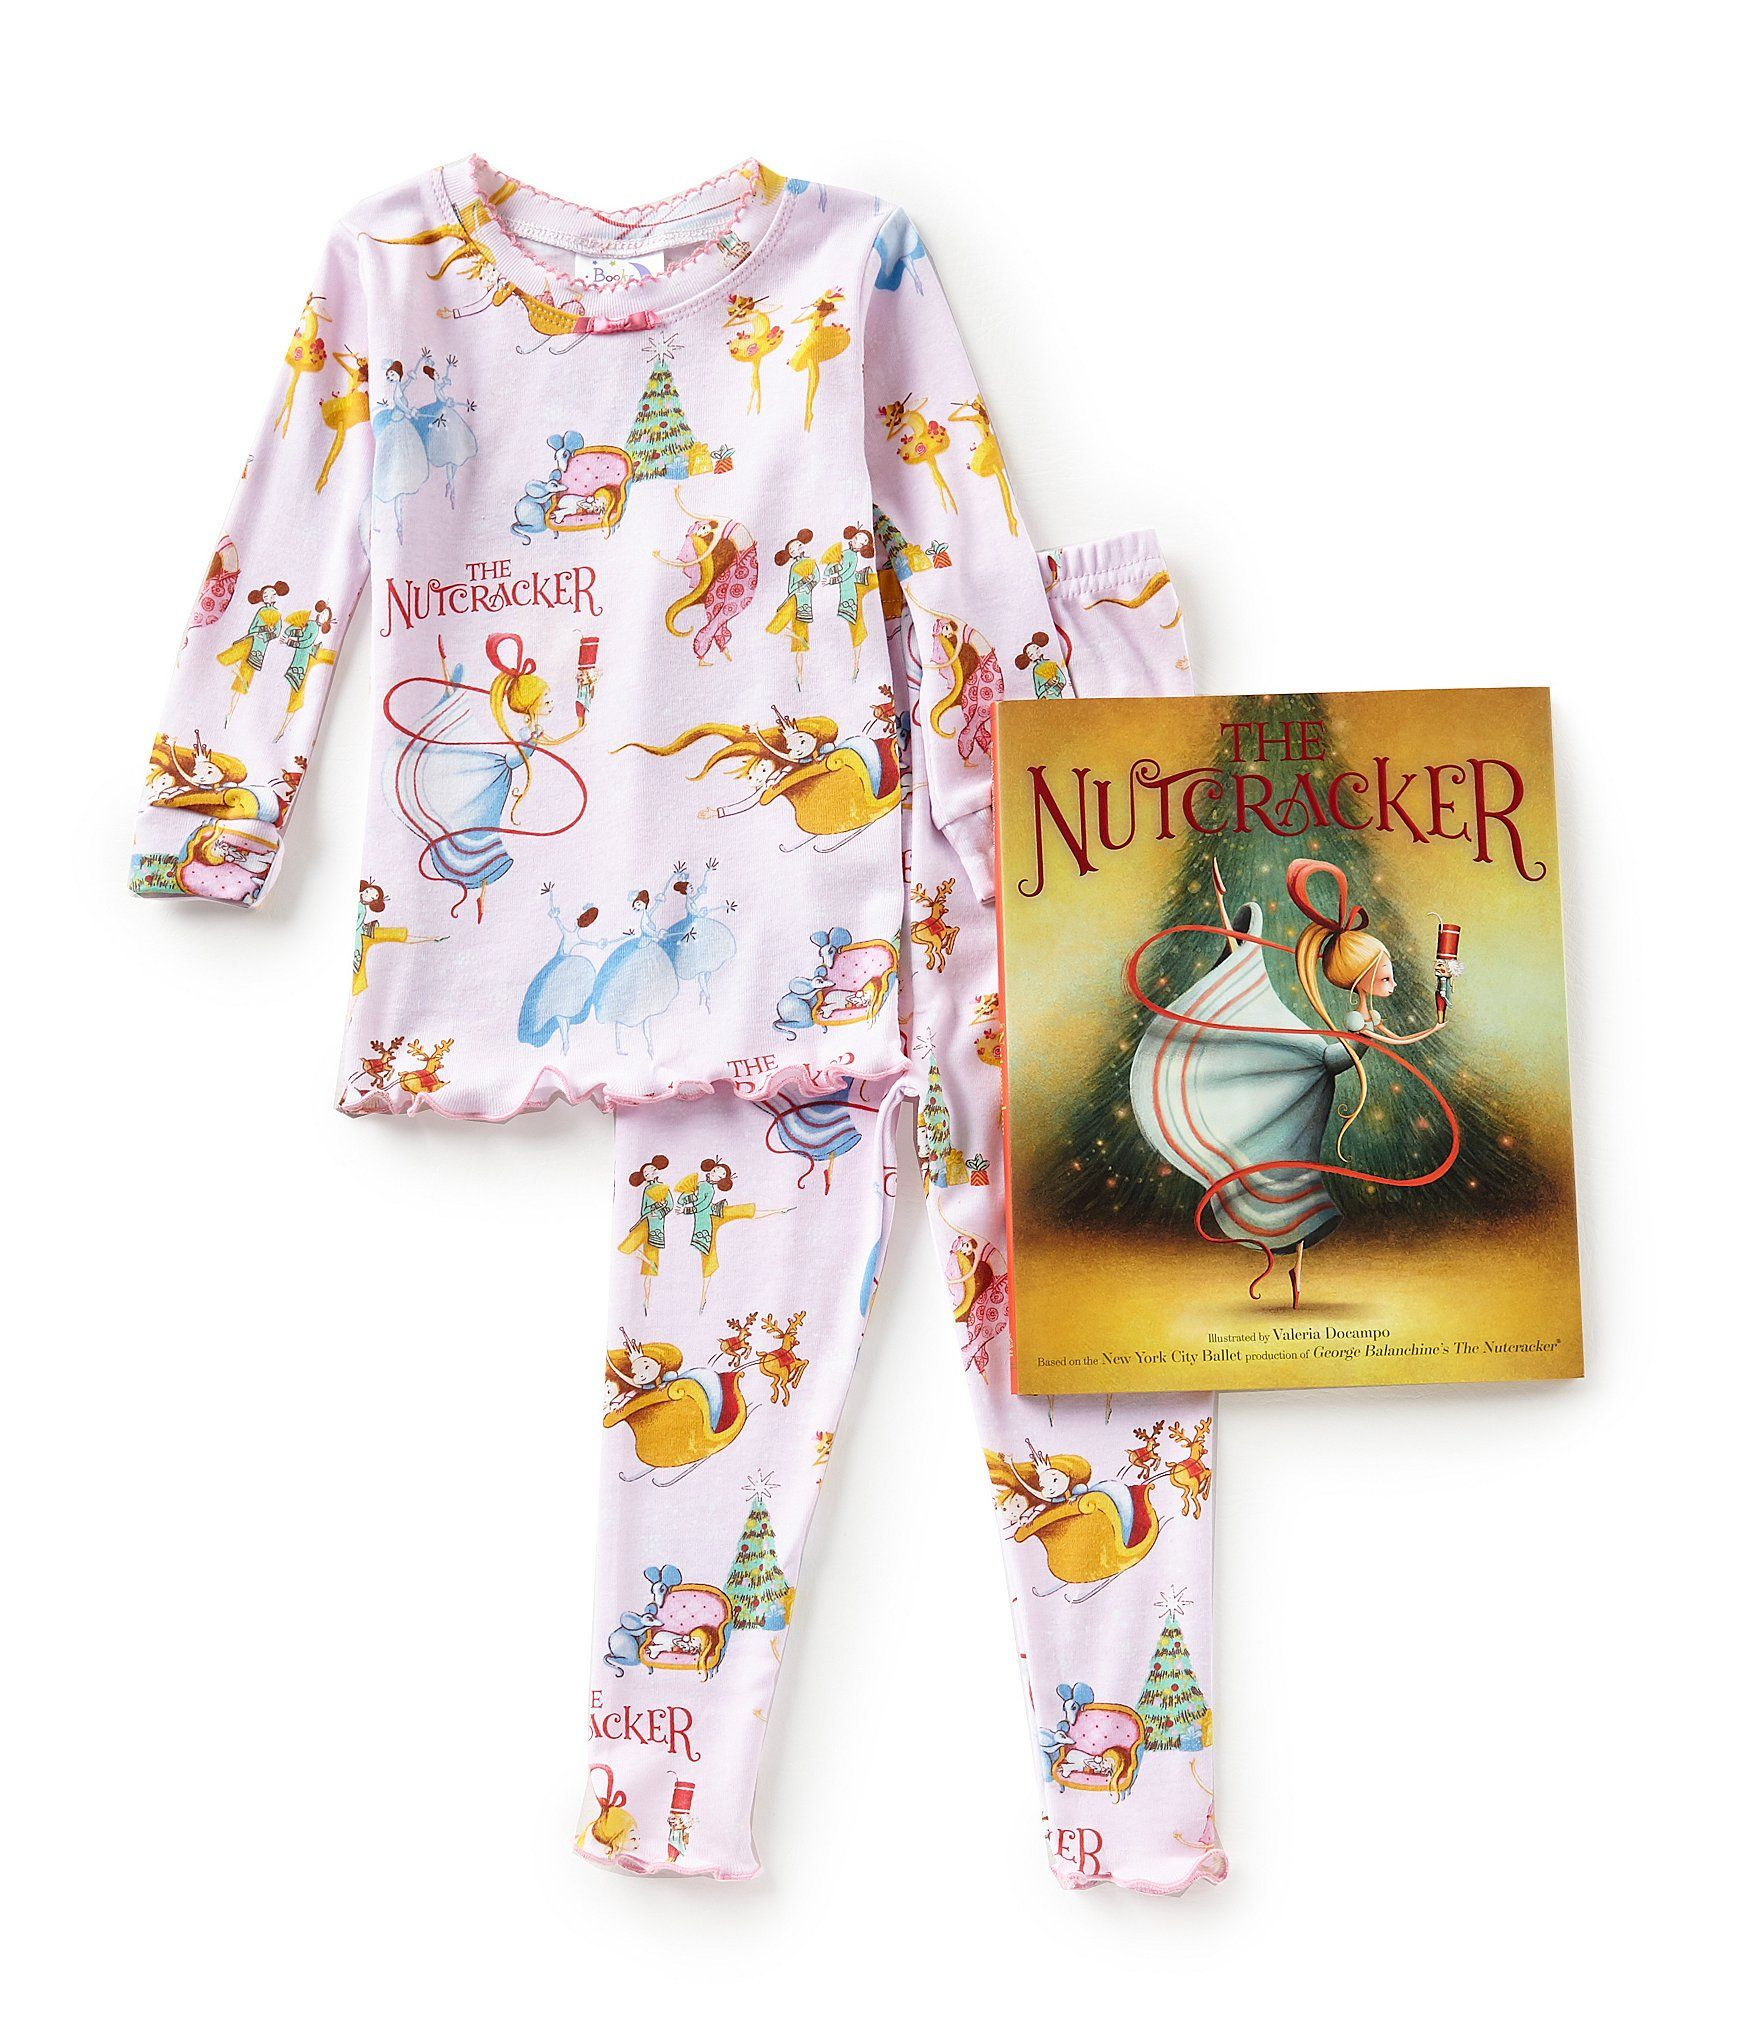 dc4ec5b6f2c5 Books To Bed LittleBig Girls 2T10 Christmas Nutcracker Pajamas and ...